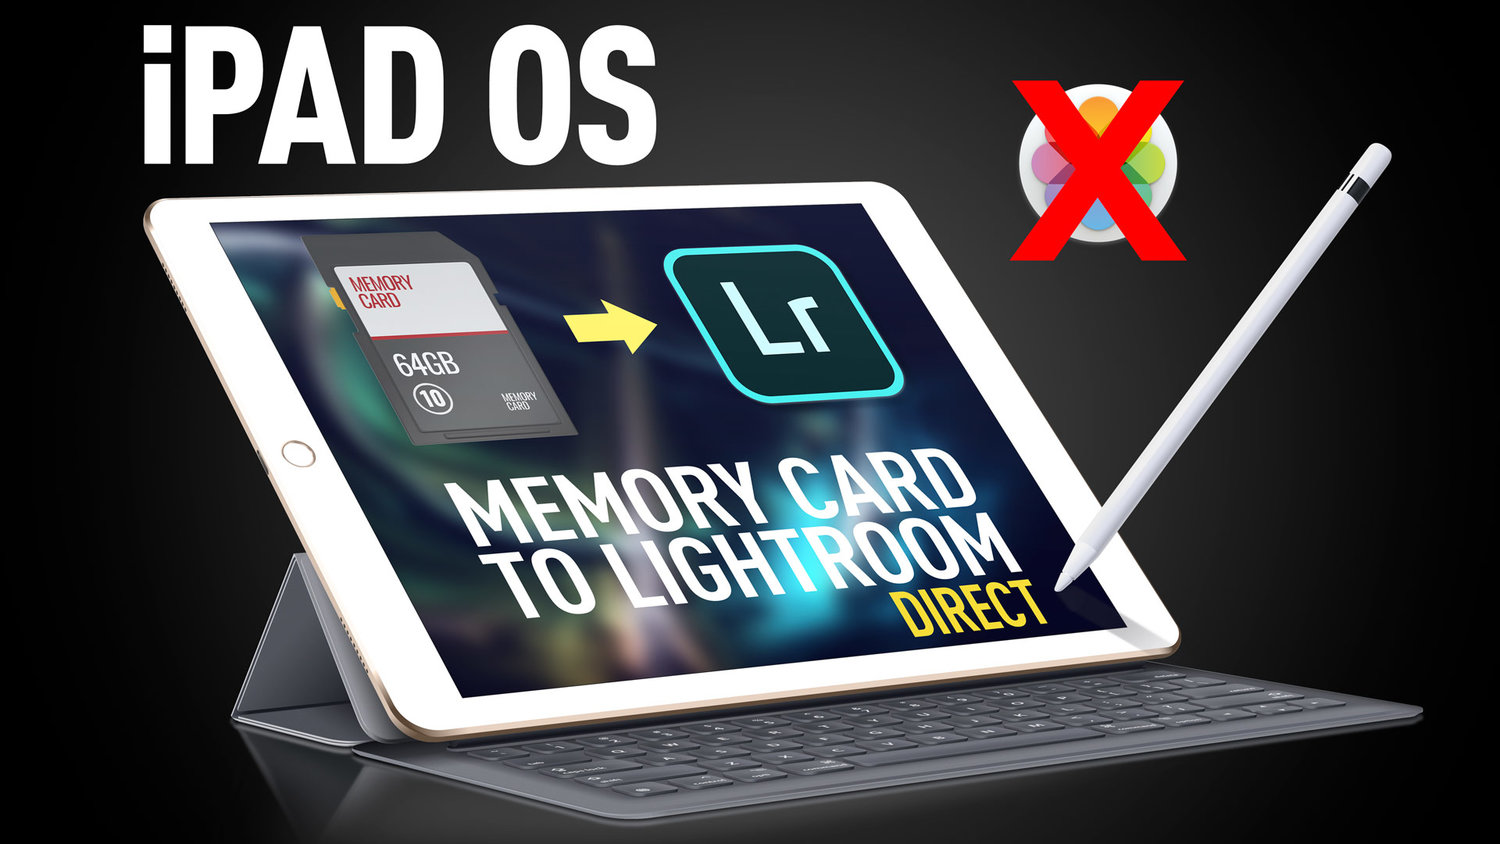 Video: How to import into Lightroom directly from a Memory Card on iPAD OS